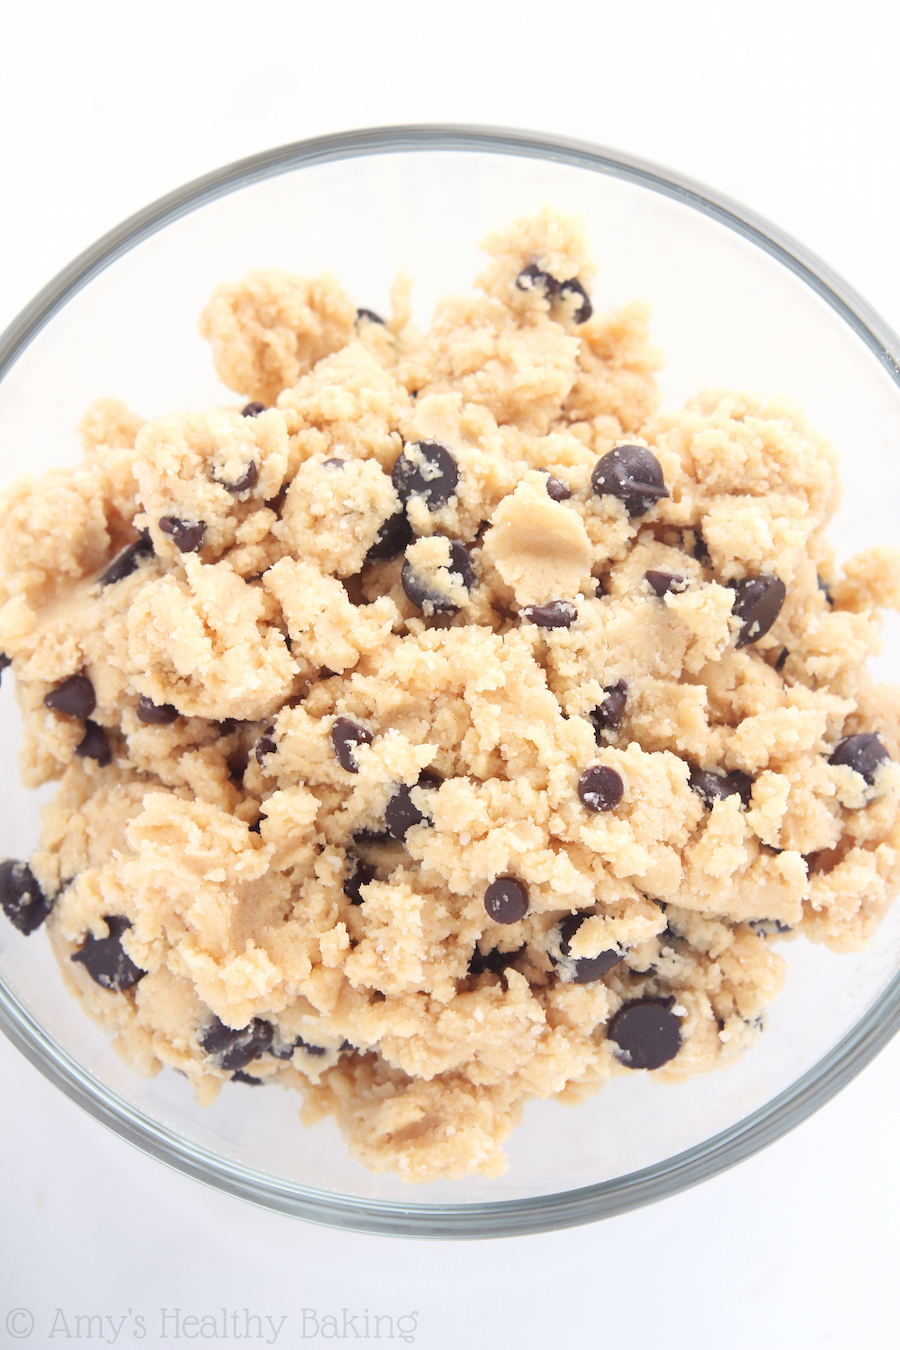 Coconut Flour Chocolate Chip Cookies | Amy's Healthy Baking